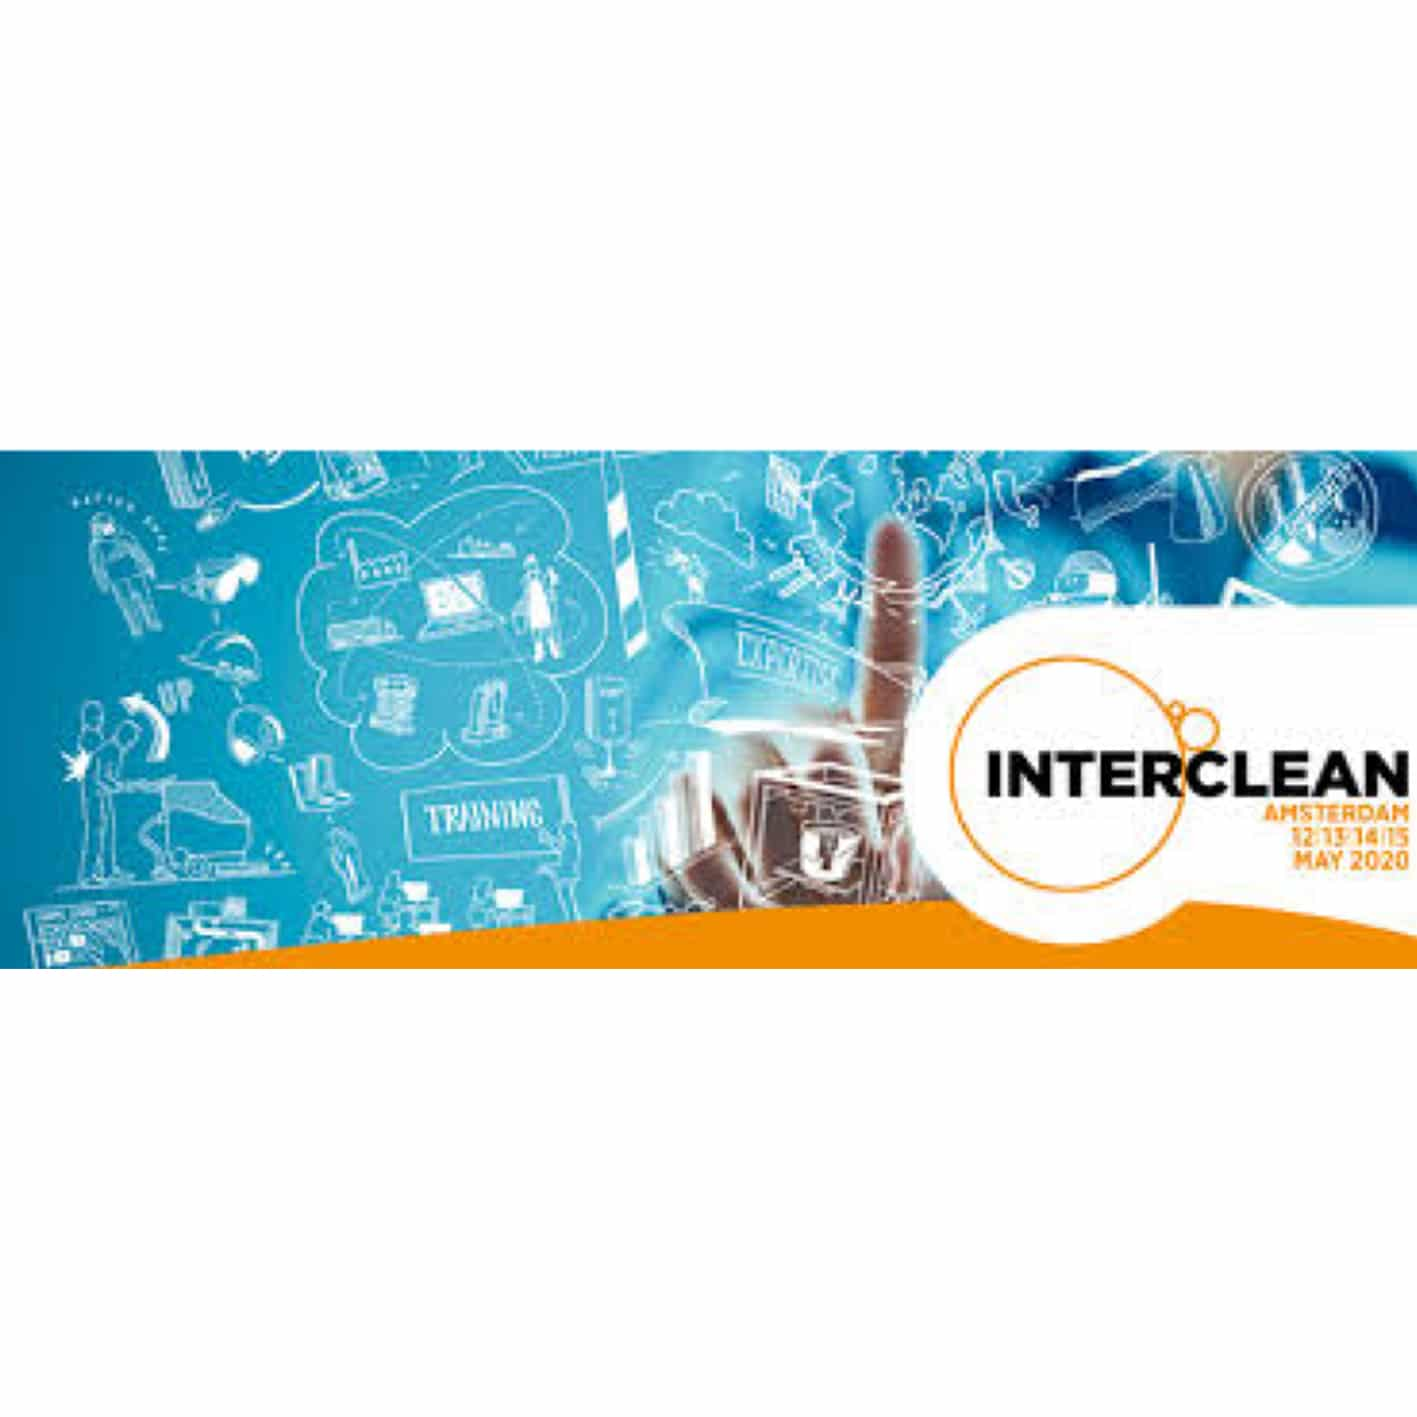 Interclean Amsterdam 2020